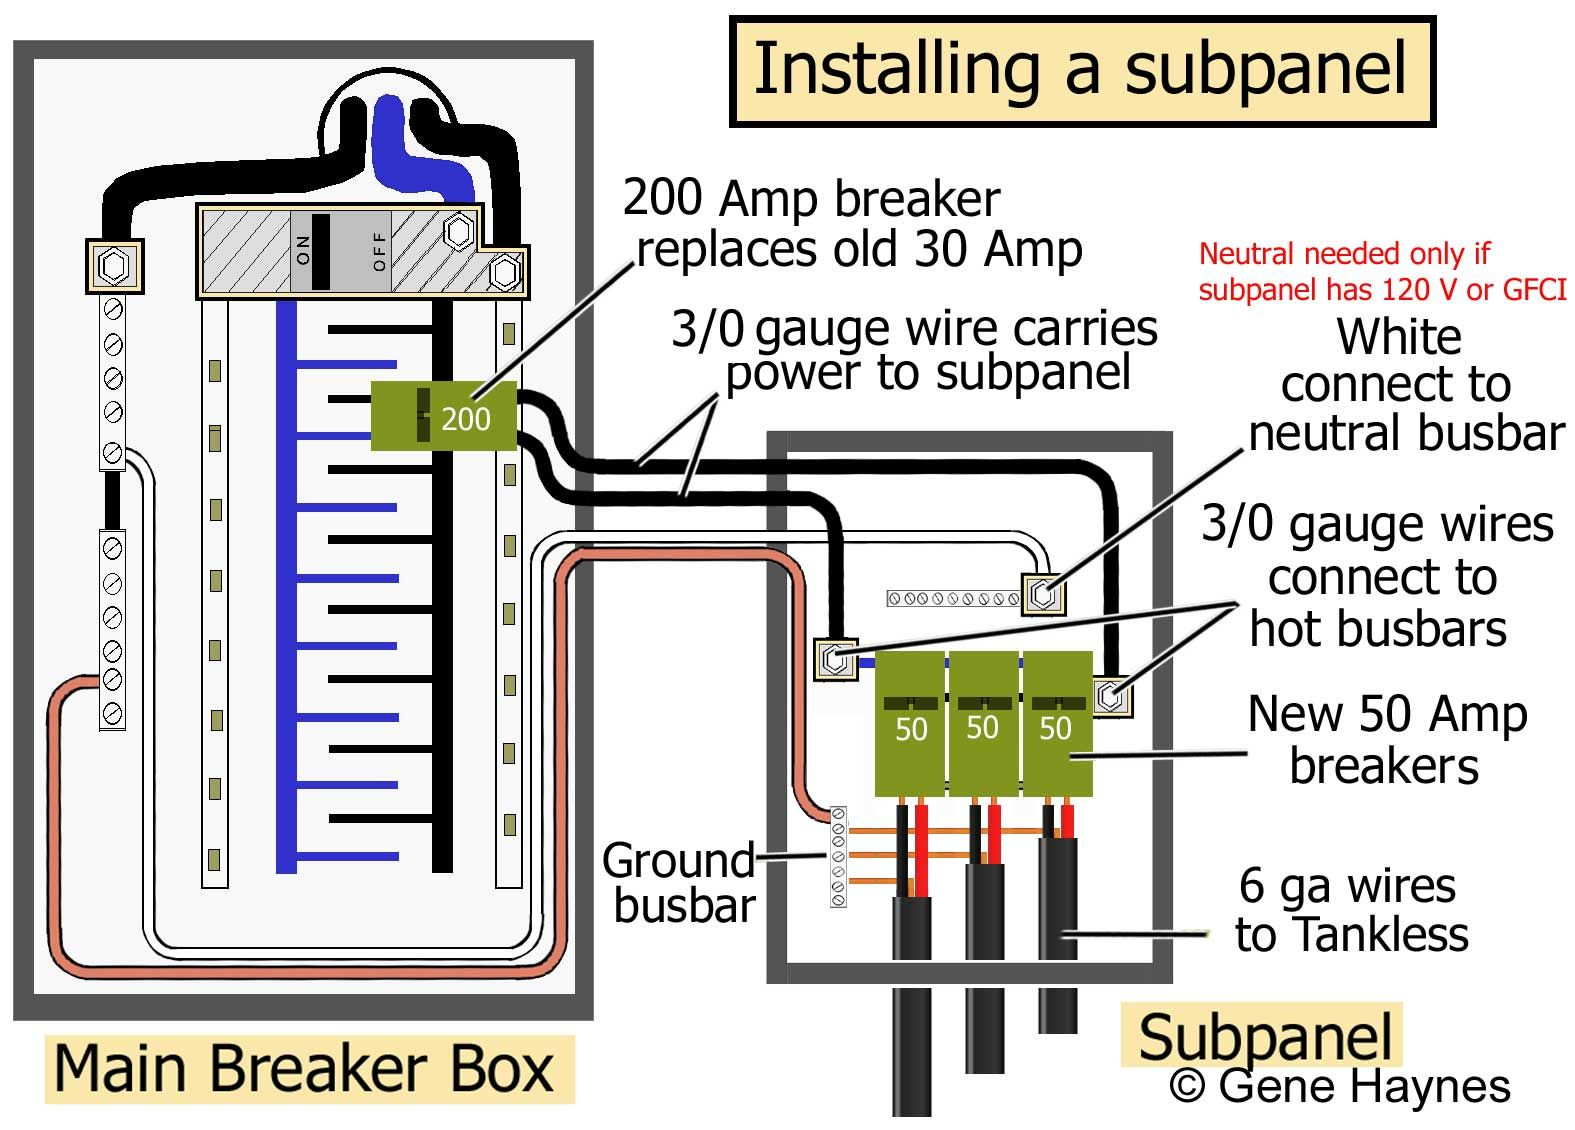 how to install a subpanel how to install main lug wiring diagram rh pinterest com 3 Wire Sub Panel Feed Typical Sub Panel Wiring Diagram